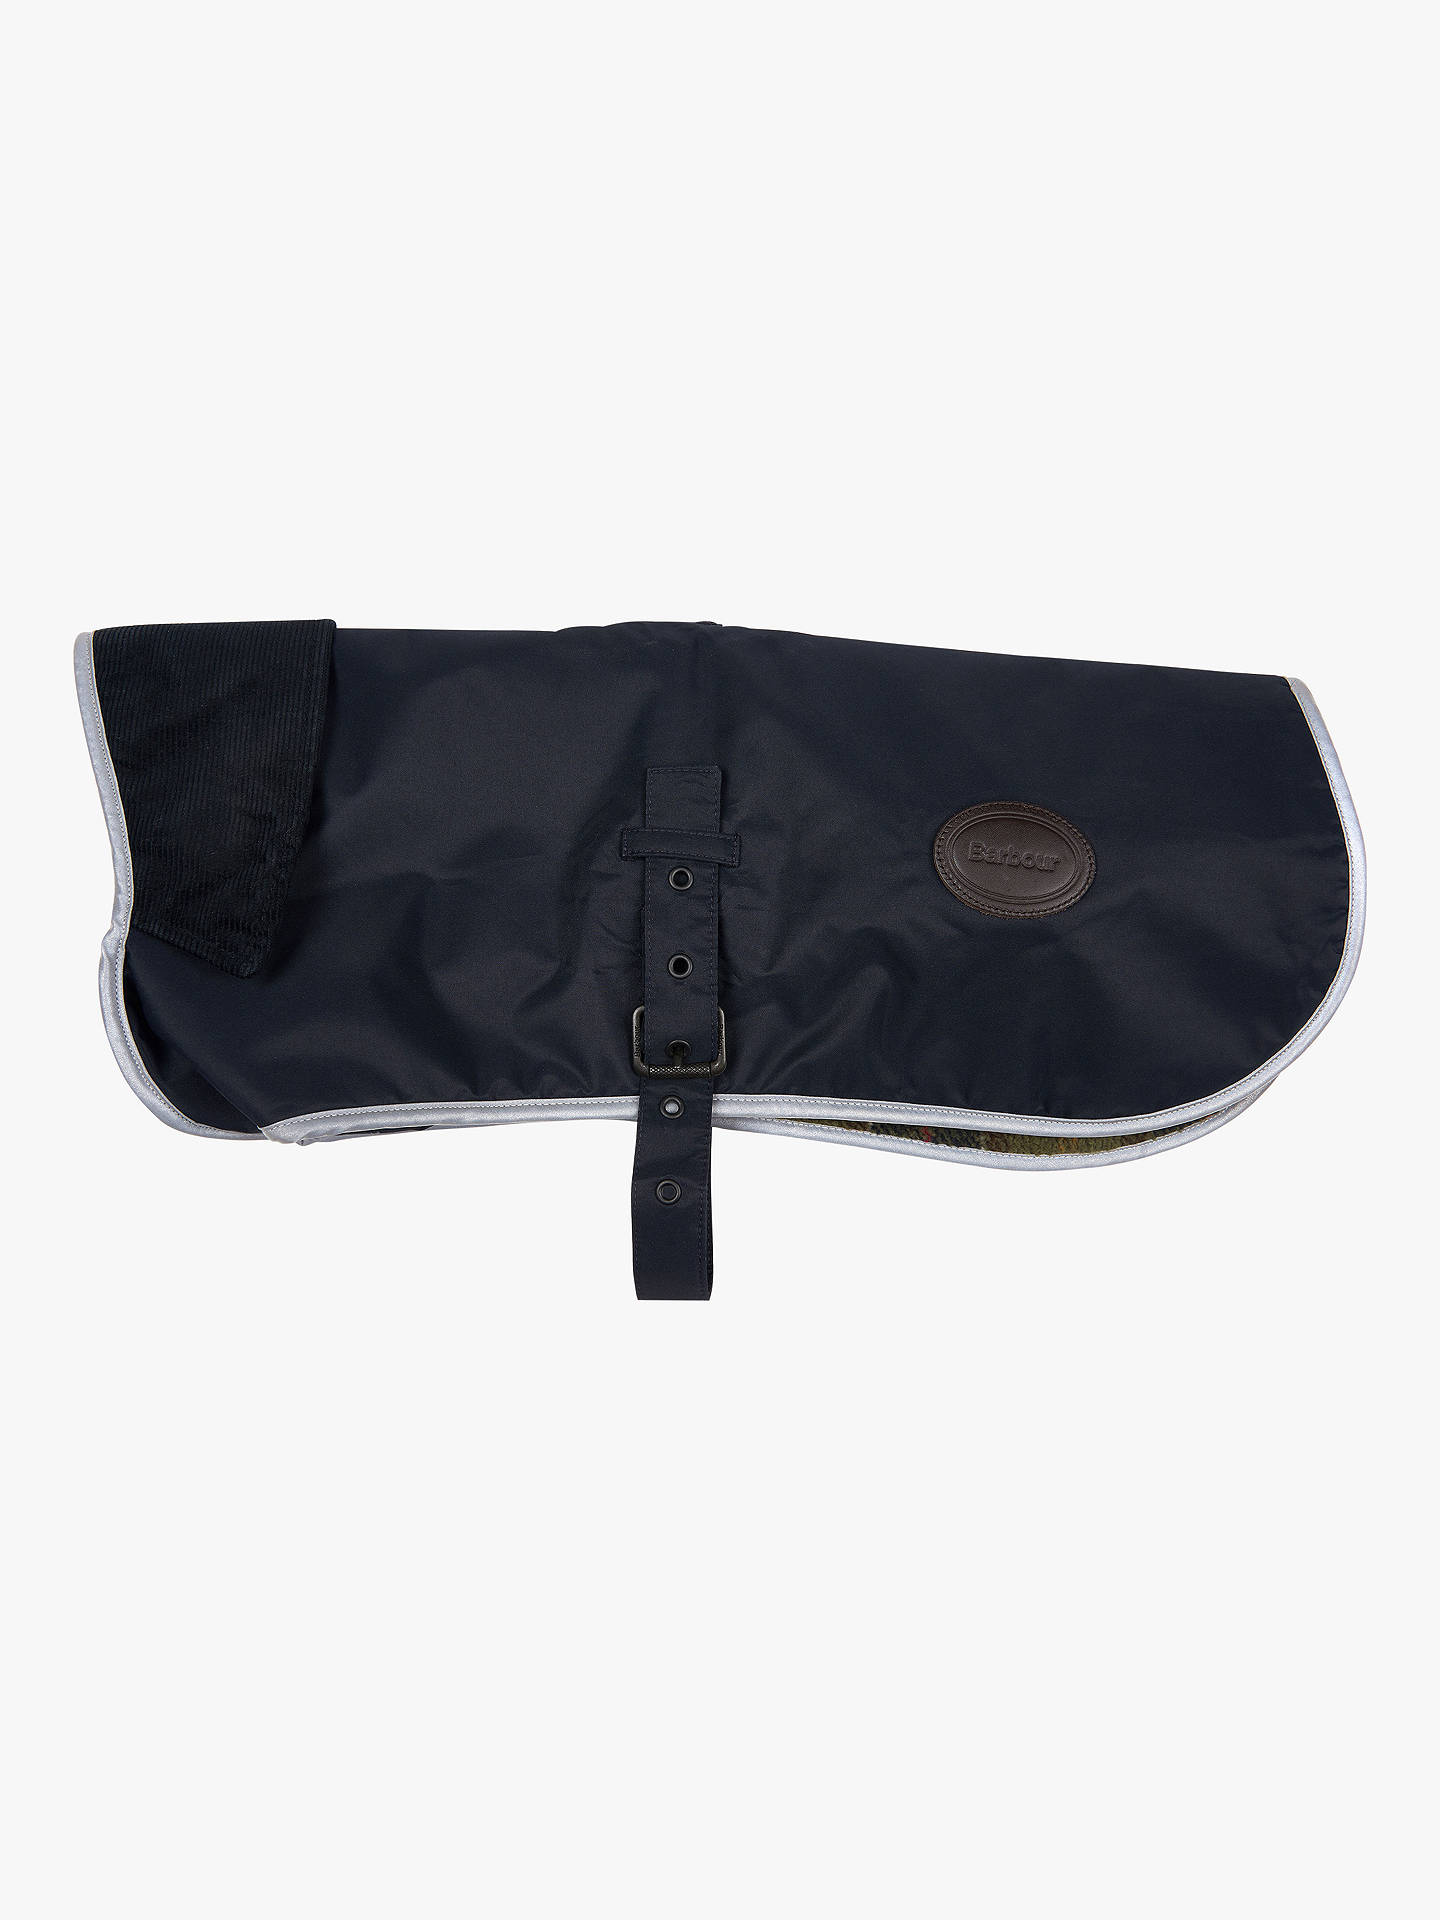 BuyBarbour Reflective Dog Coat, Medium Online at johnlewis.com